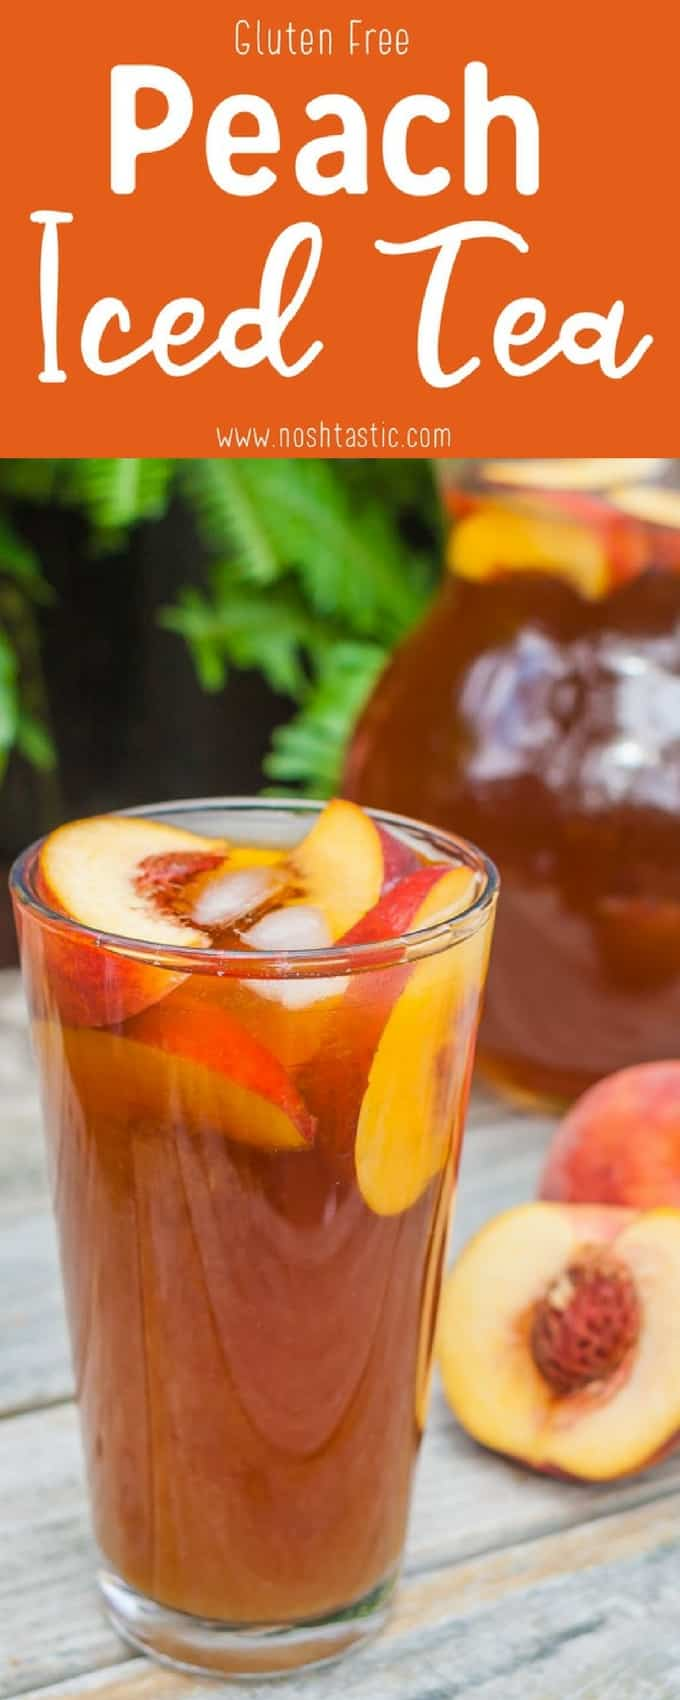 It's so simple and easy to make, Peach Iced Tea recipe made with real peaches and only three ingredients!